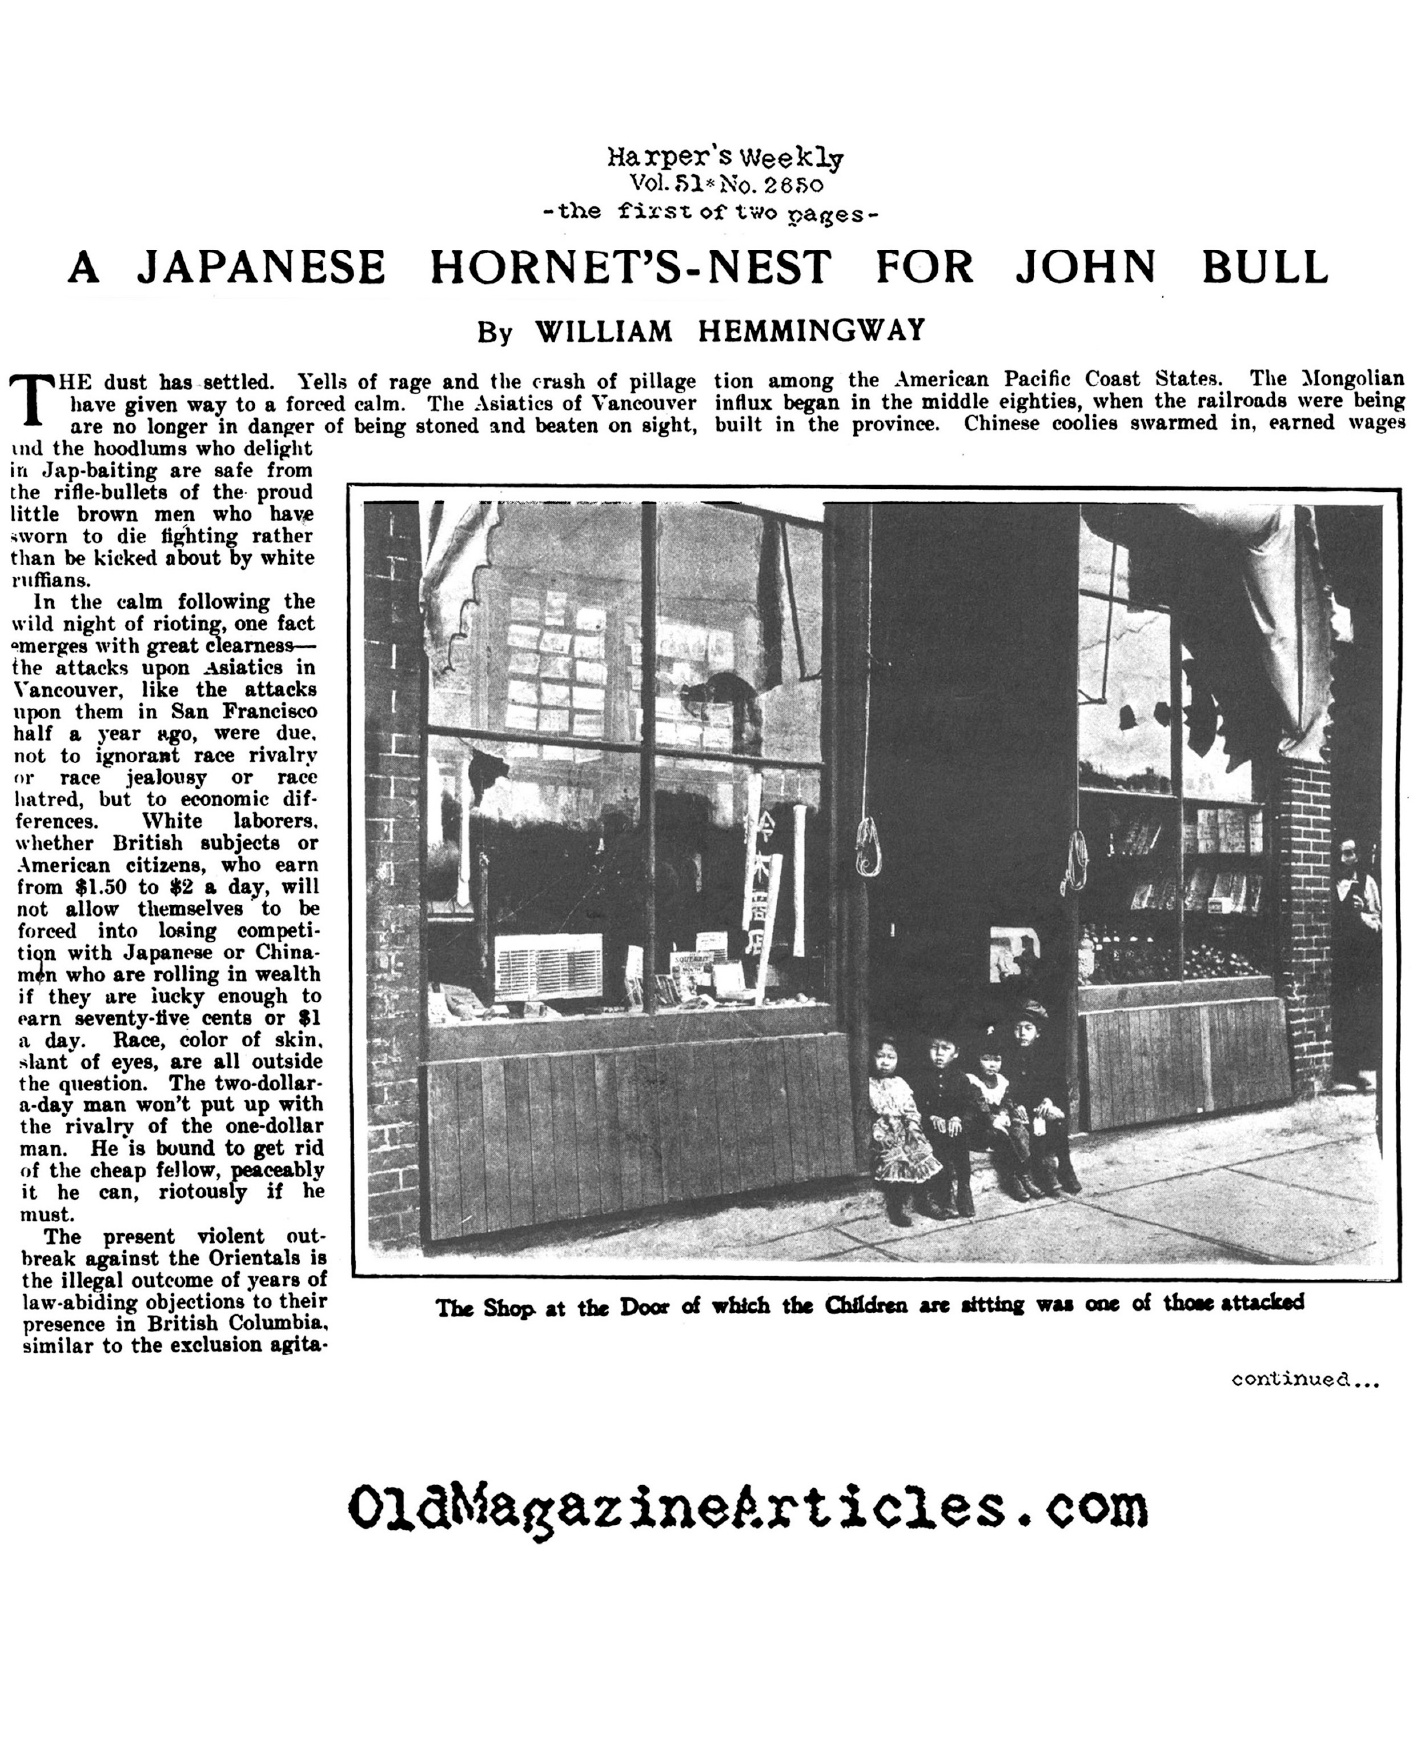 Anti-Asian Riots in Vancouver (Harper's Weekly, 1907)